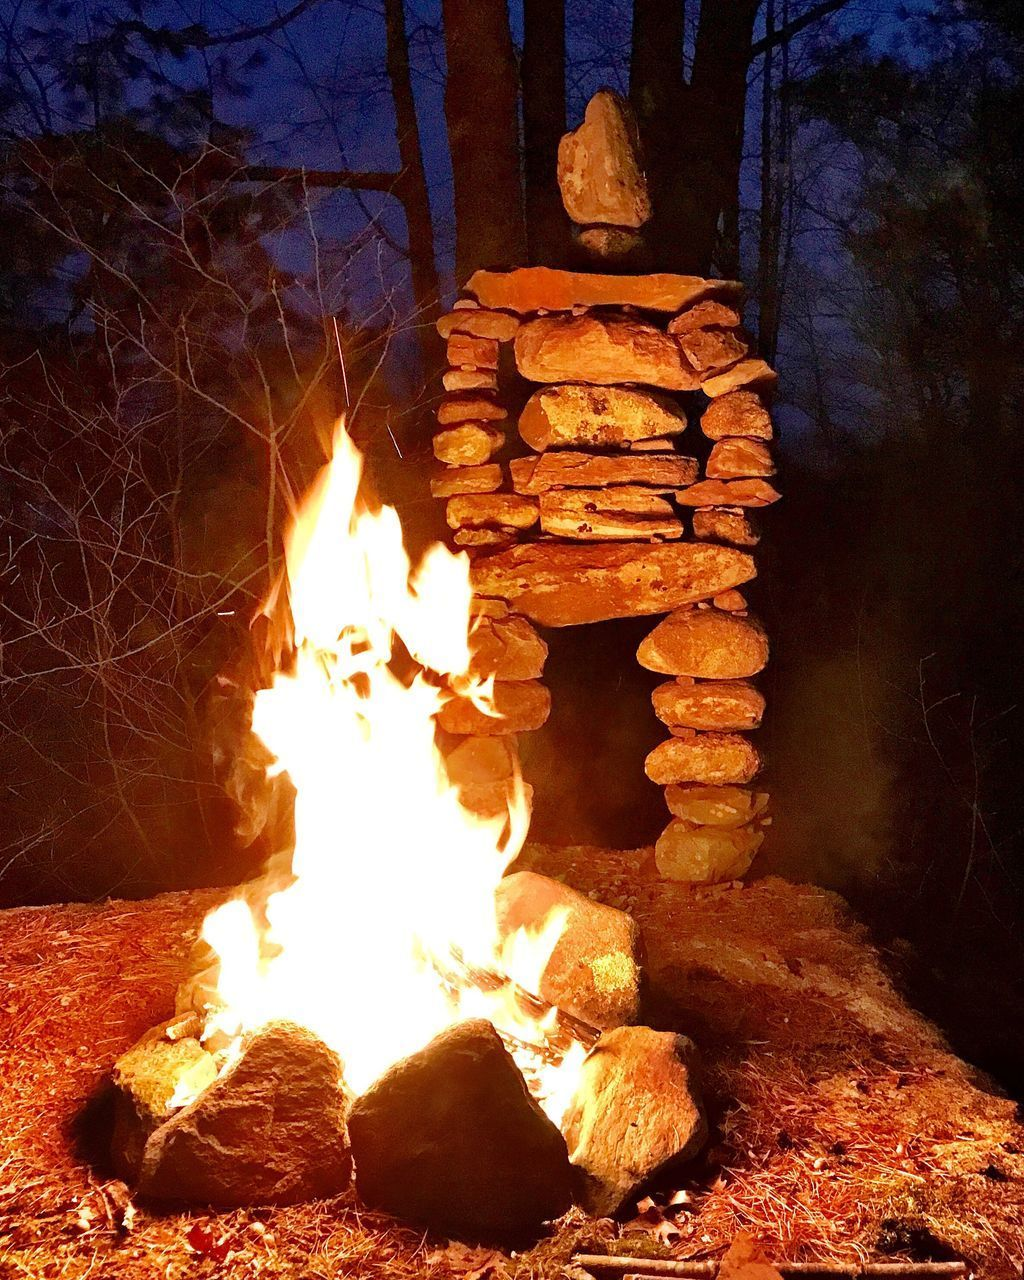 burning, night, flame, heat - temperature, no people, illuminated, outdoors, bonfire, nature, fire pit, close-up